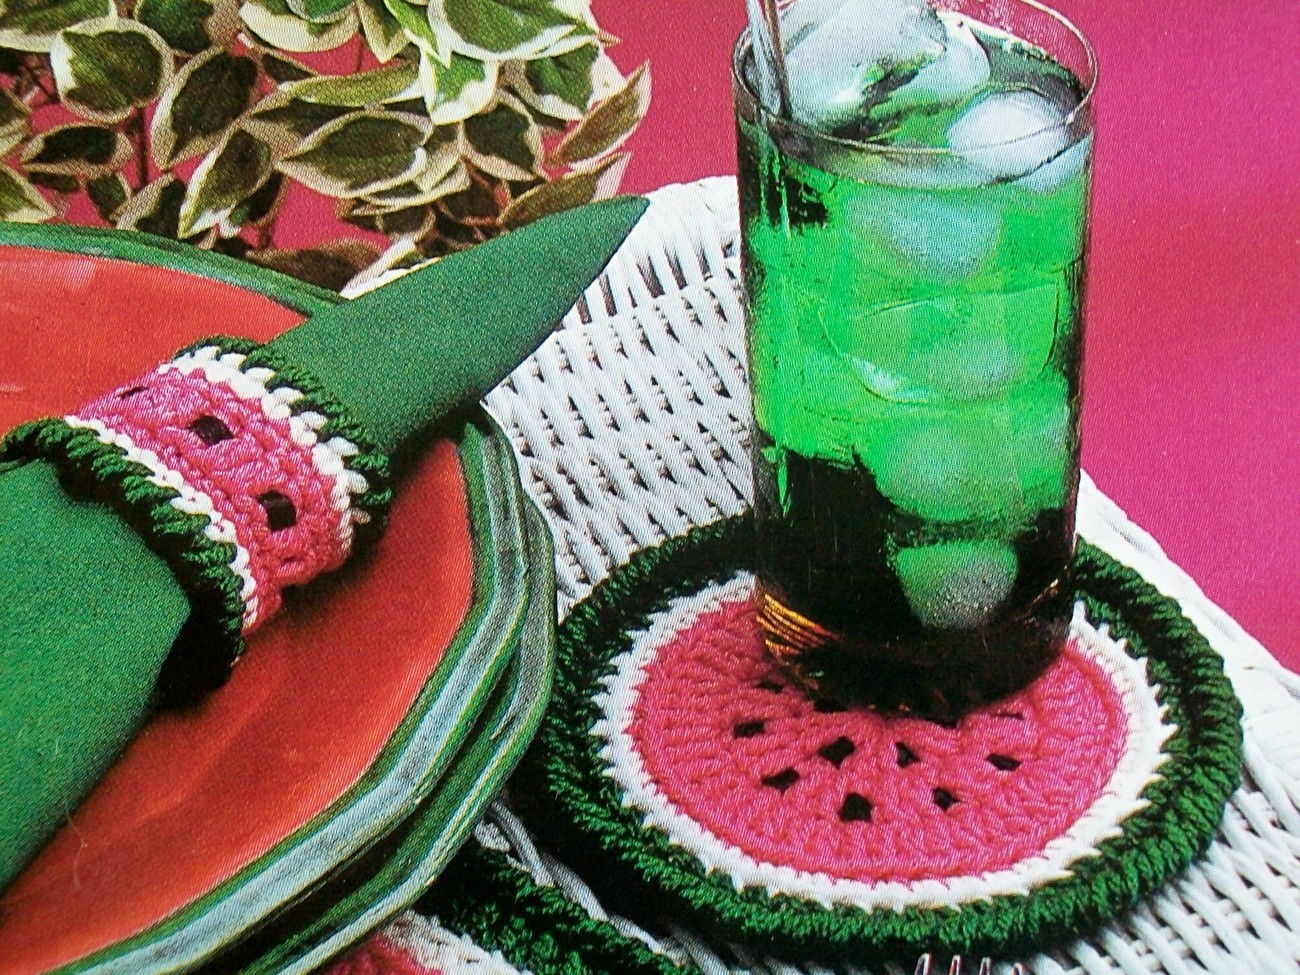 Watermelon Kitchen Set, Placemat Coaster And 39 Similar Items